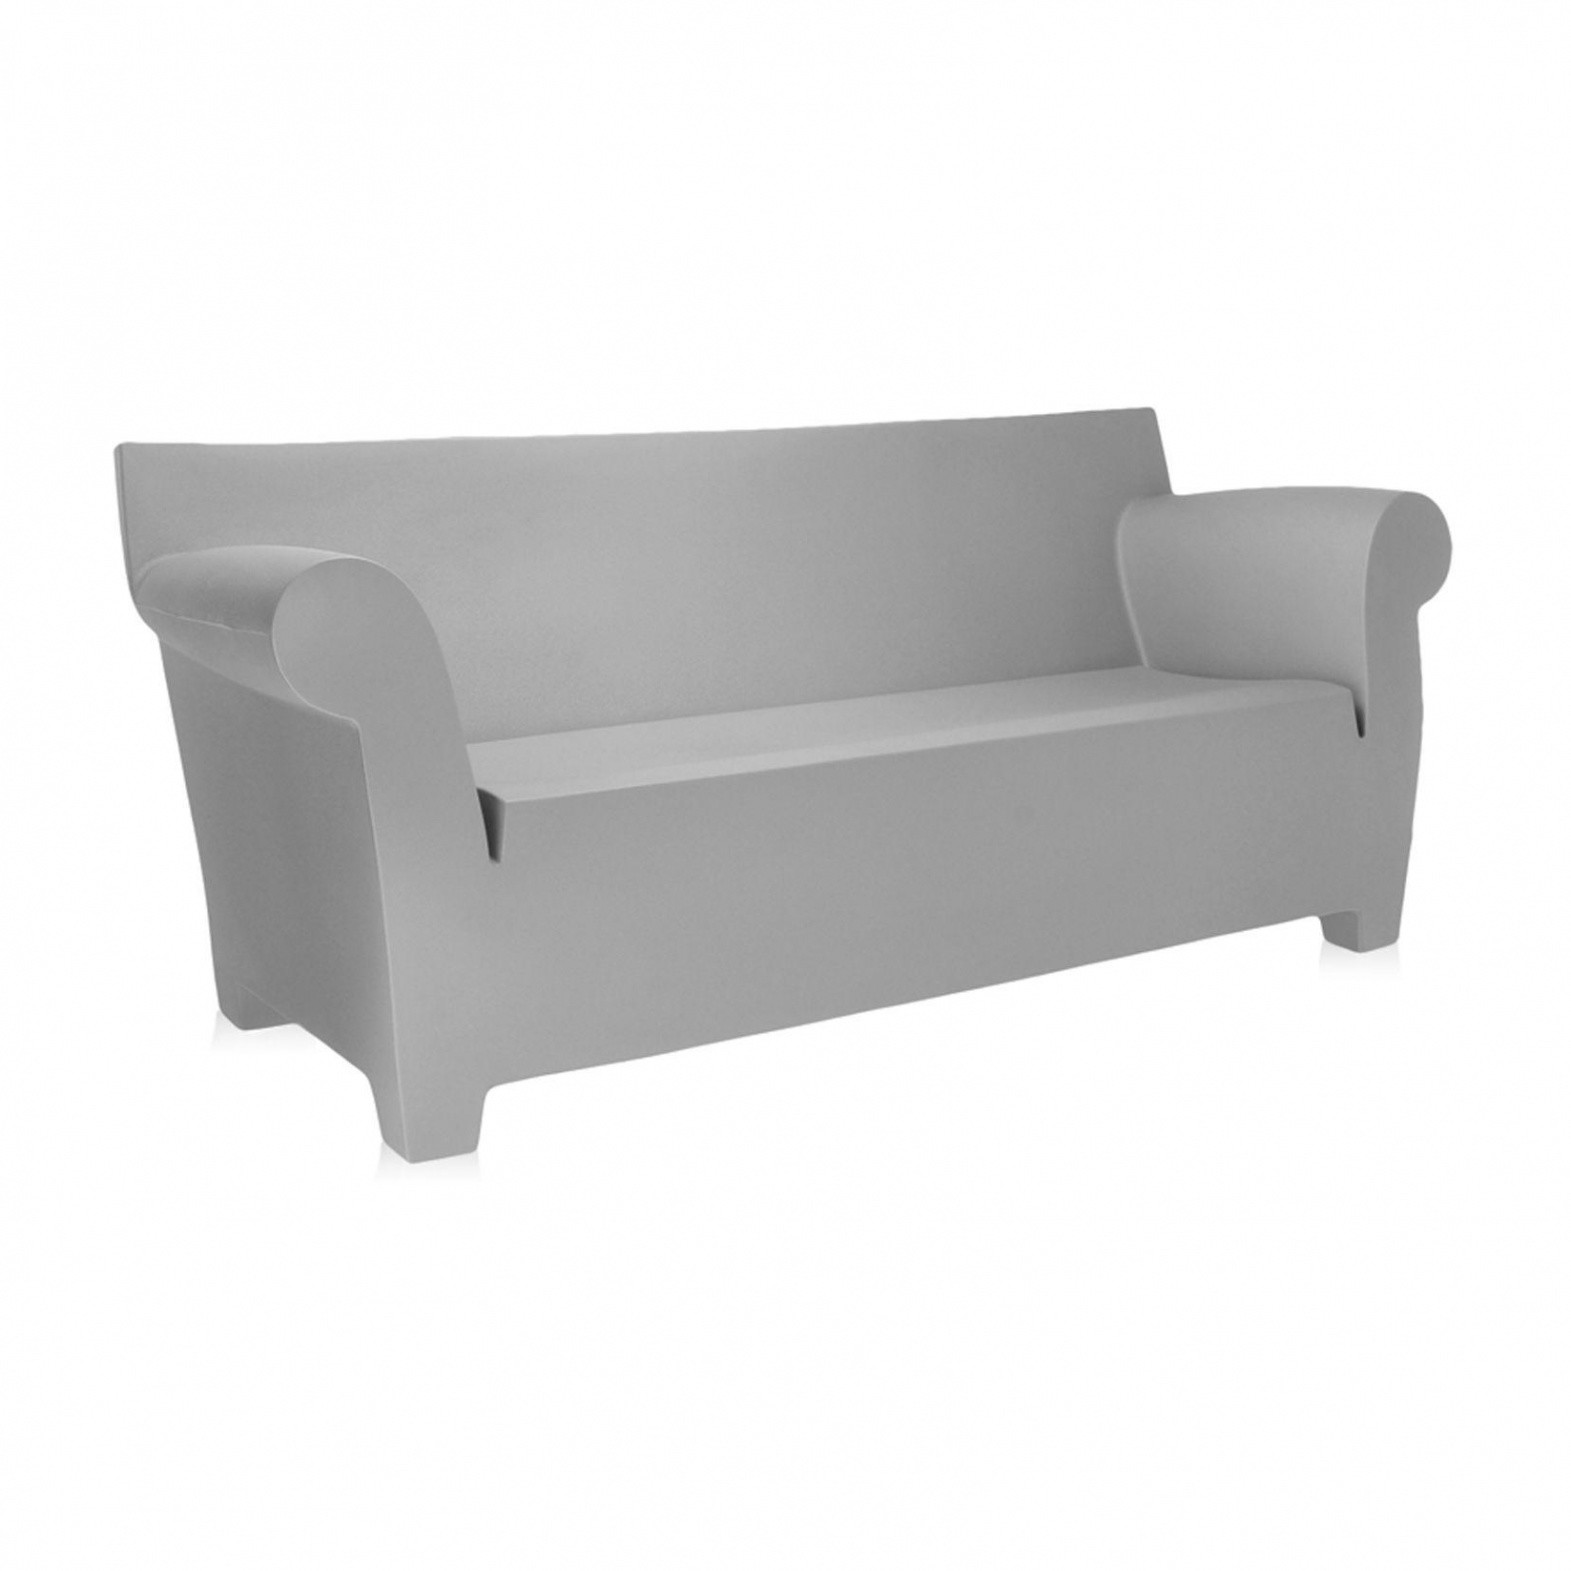 Kartell Bubble Club 2 Seater Outdoor Sofa Ambientedirect